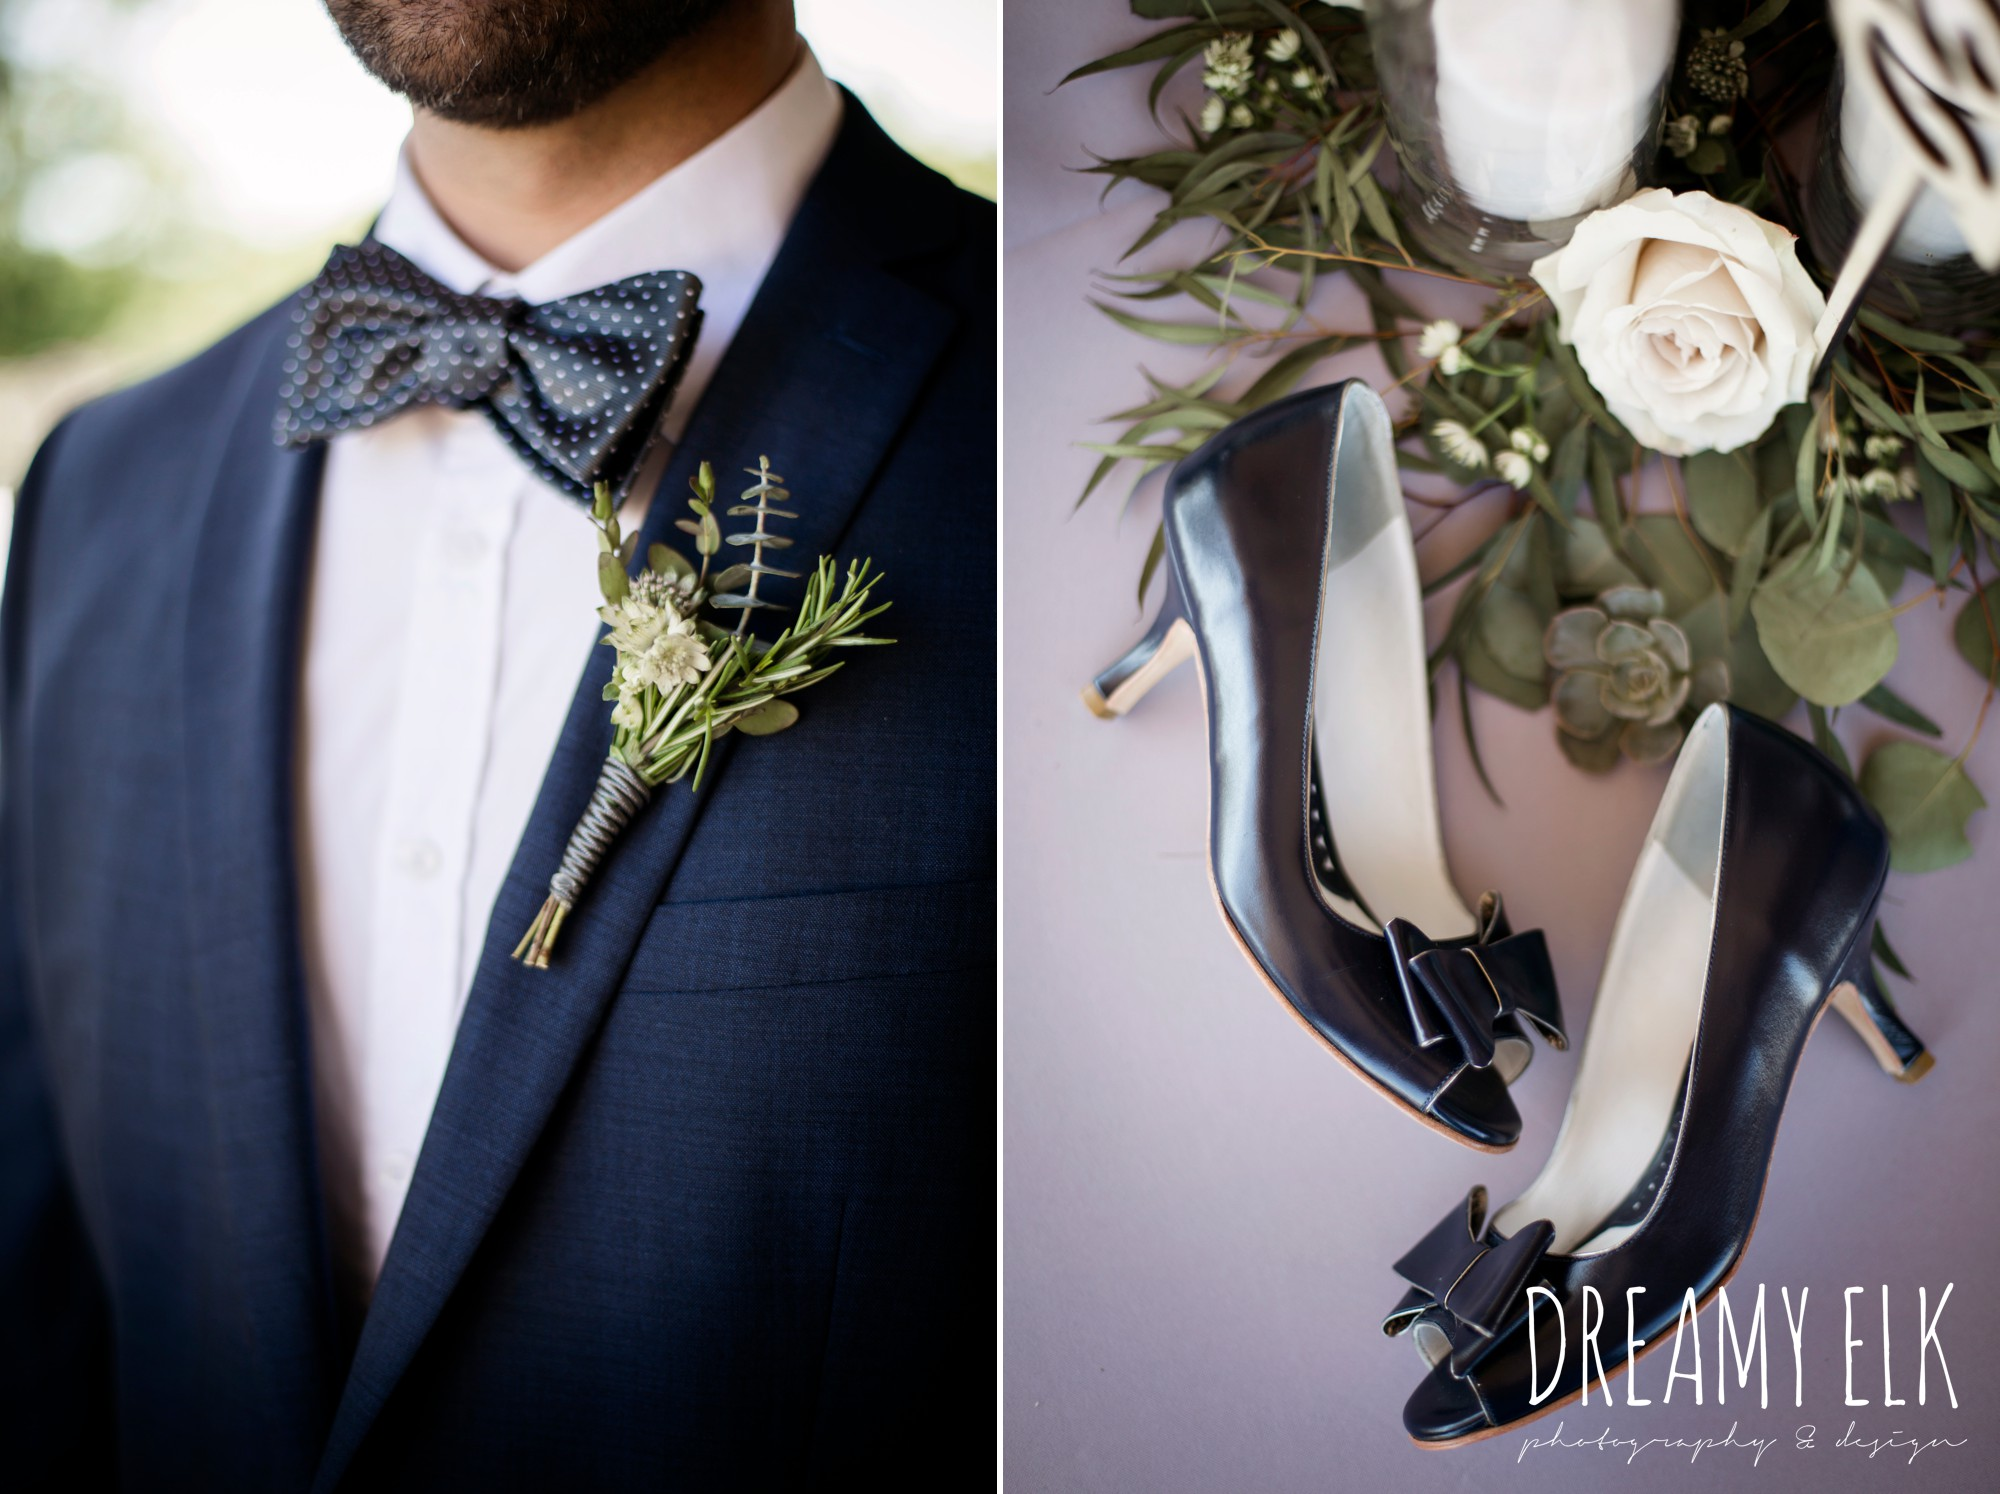 unforgettable floral, white and green succulent boutonniere, le lafrendi handmade shoes, outdoor april spring wedding photo, double creek crossing, college station, texas, austin wedding photographer {dreamy elk photography and design}